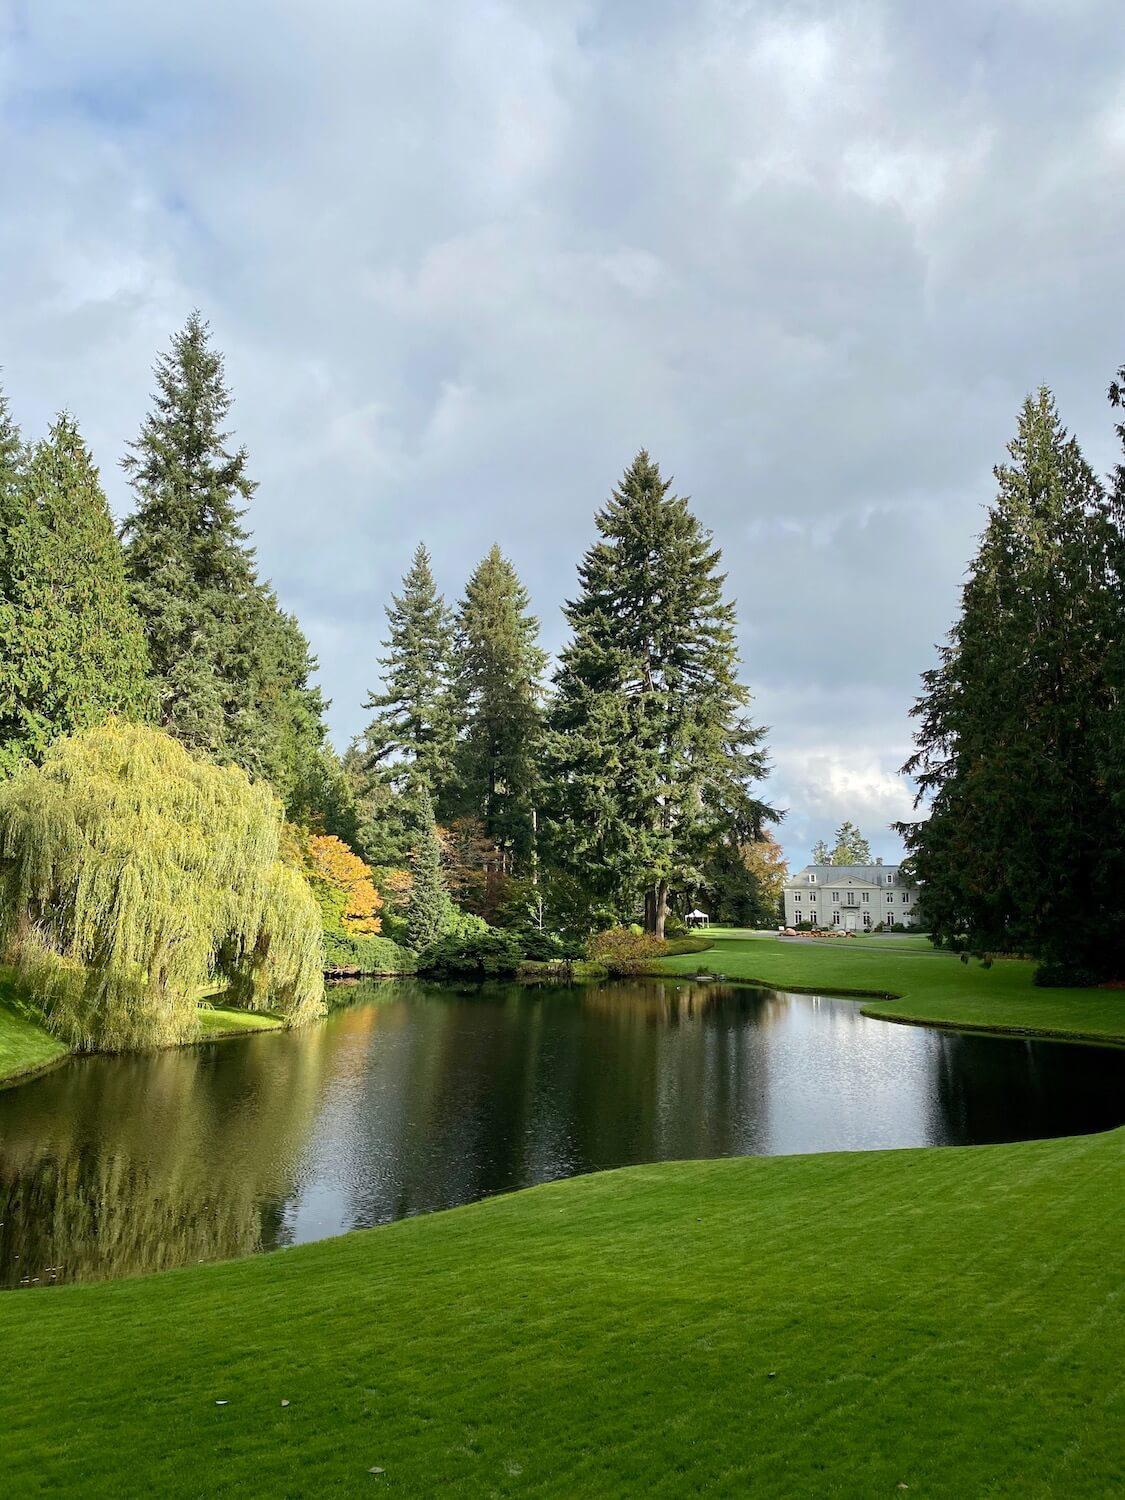 The Residence at Bloedel Reserve on Bainbridge Island sits regally above a large grassy lawn that surrounds a peaceful lake.